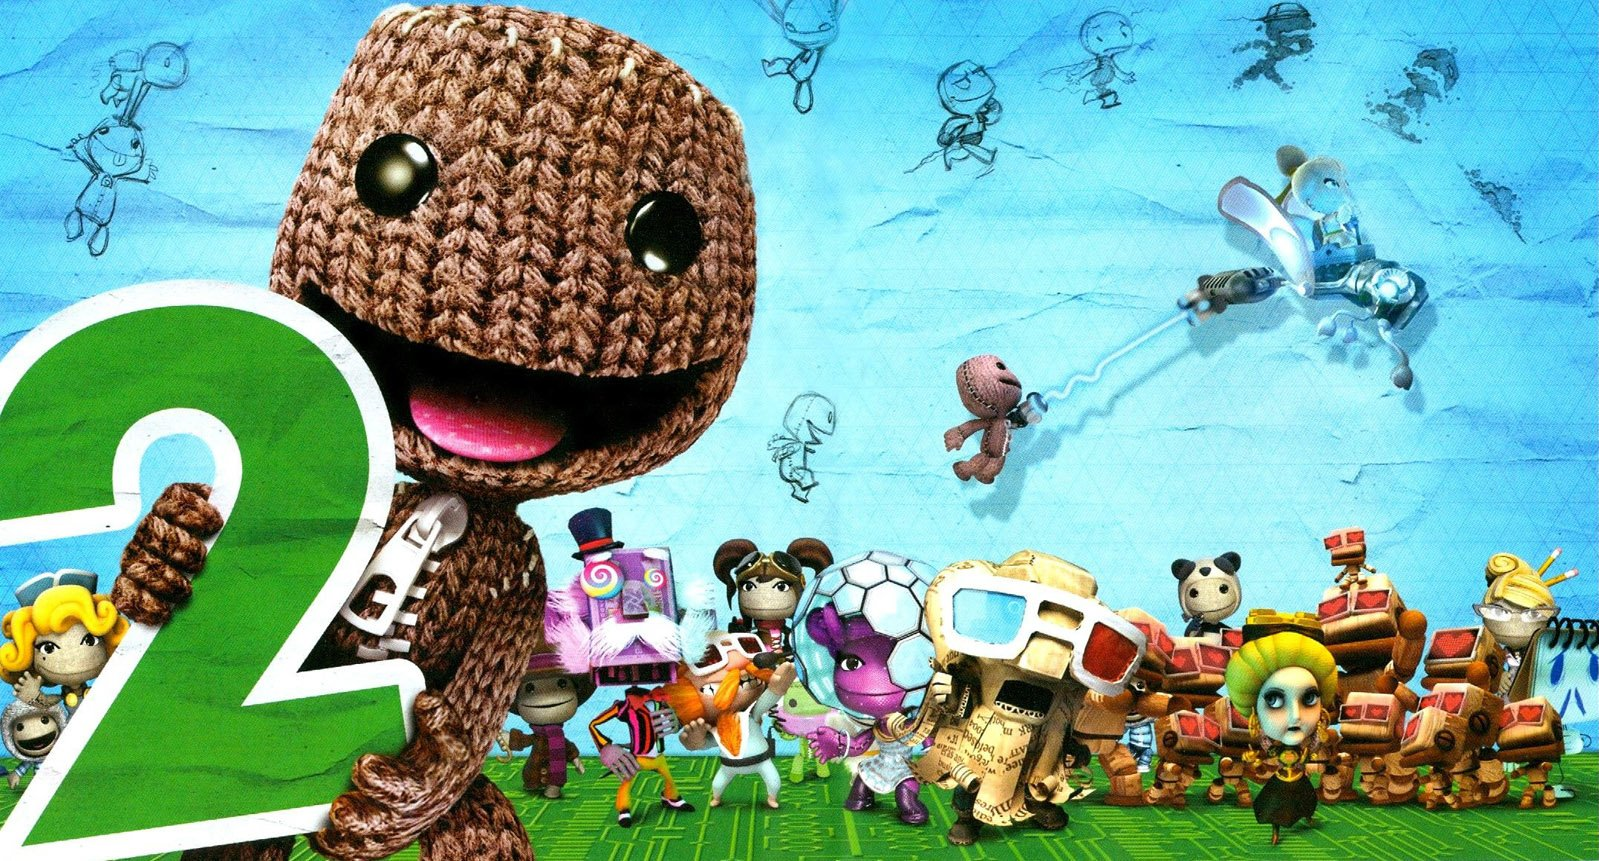 LittleBigPlanet 2 Soundtrack 10th Anniversary